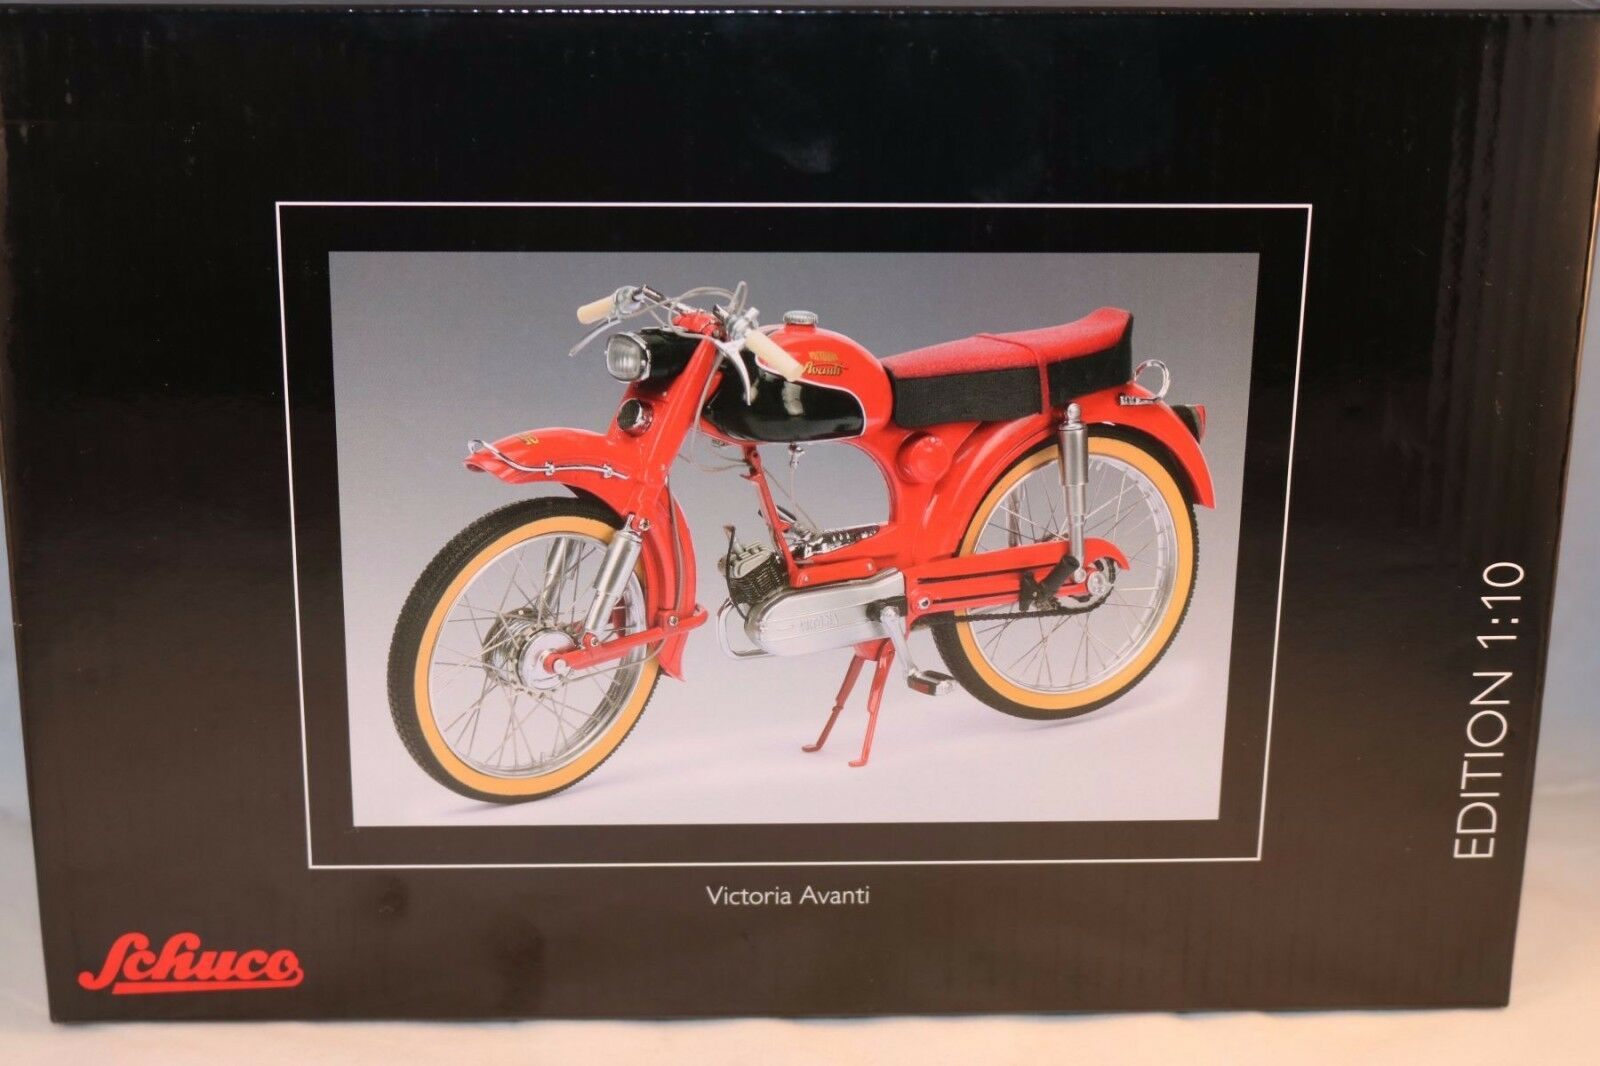 Schuco Victoria Avanti rot motorcycle 1 10 perfect mint in box